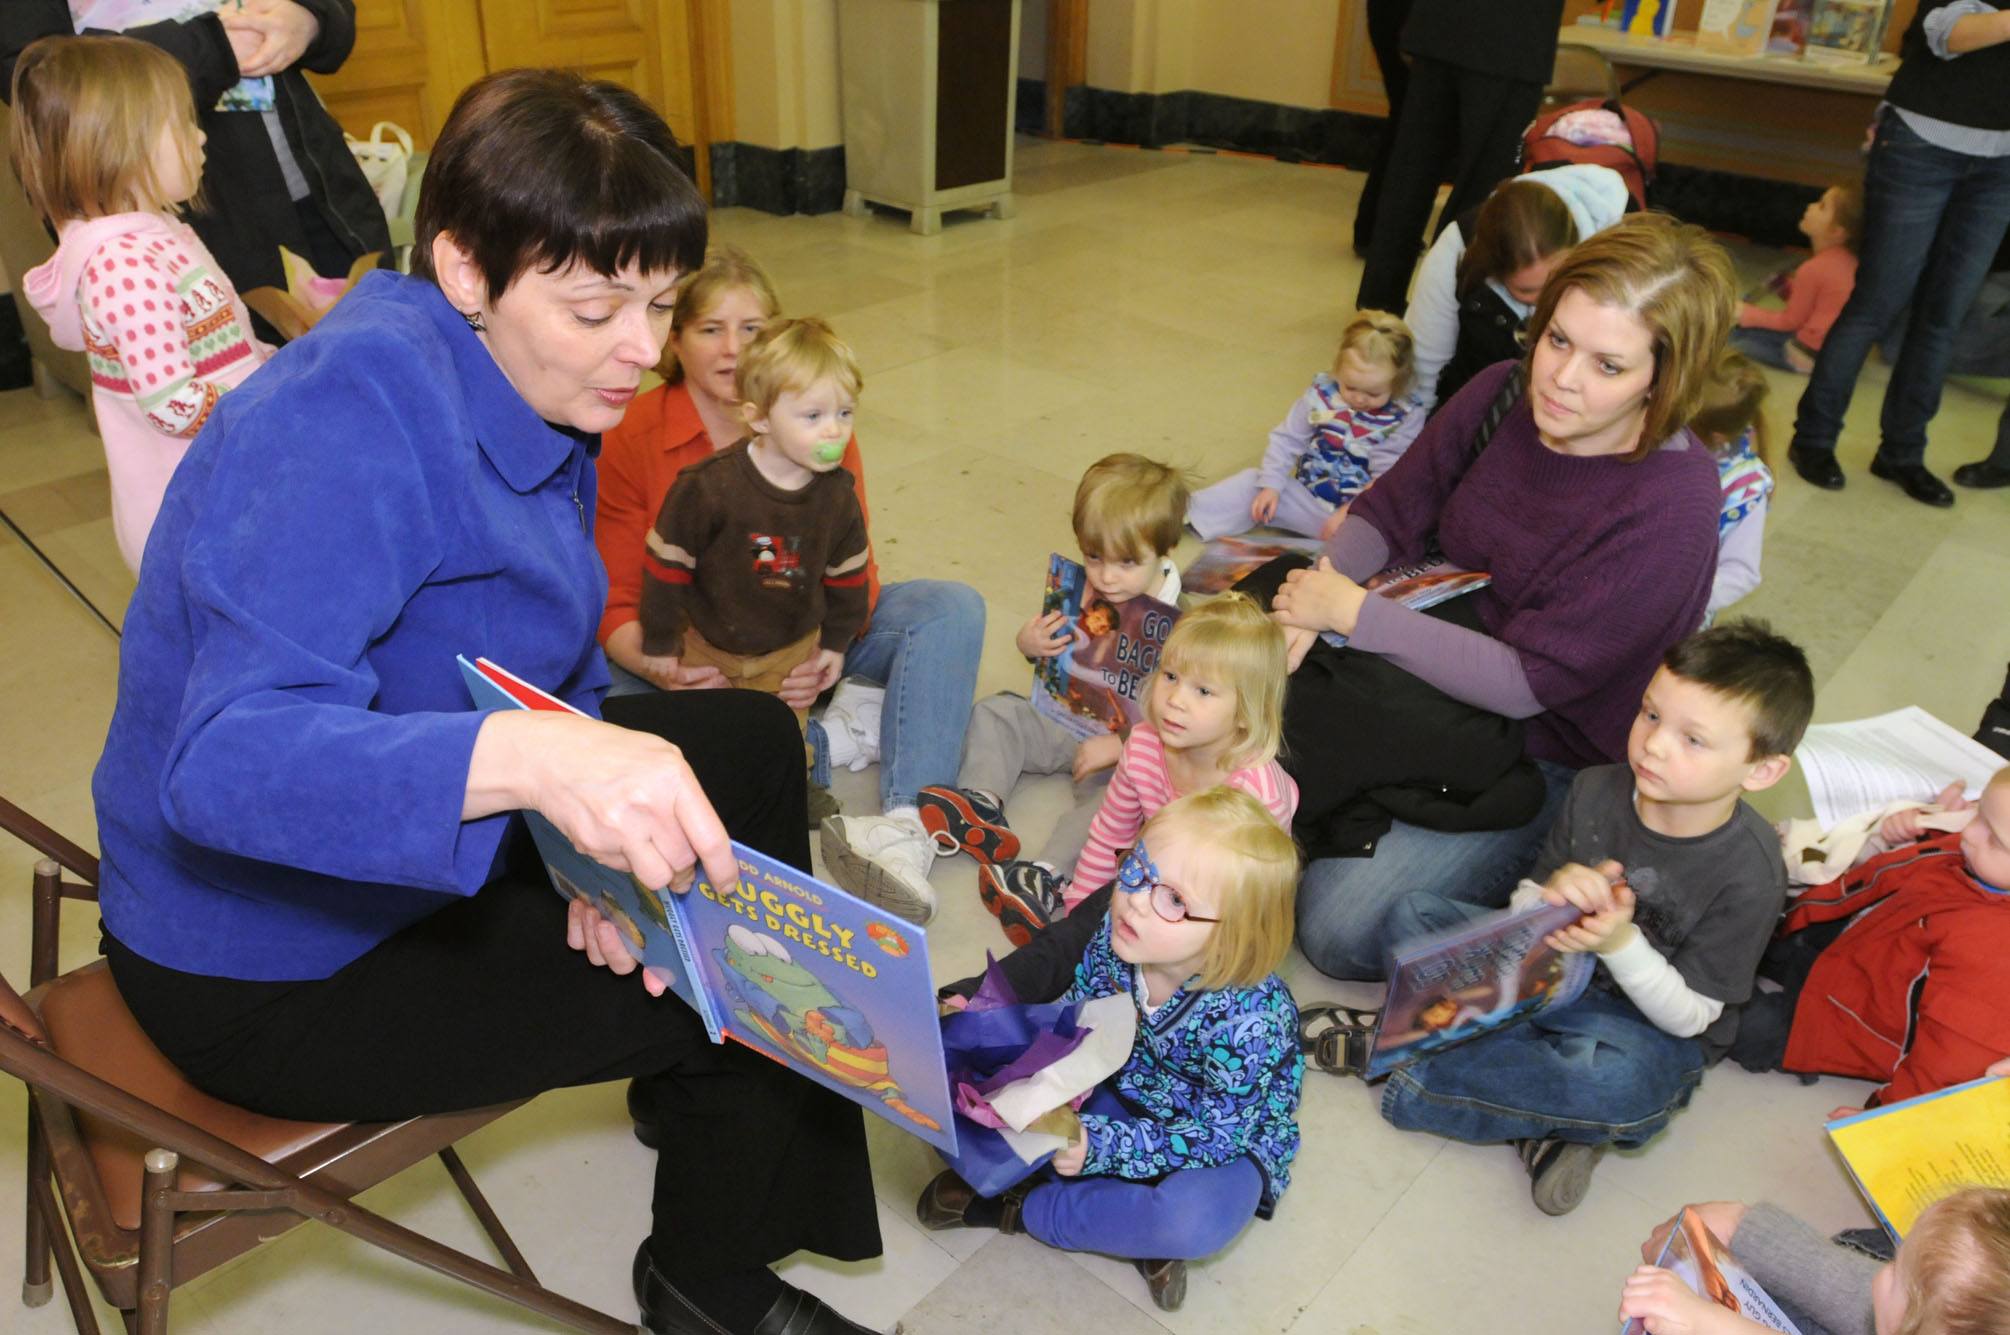 Investing in K-12 and expanding early childhood education is a top priority for Sandy. Include education achievements.